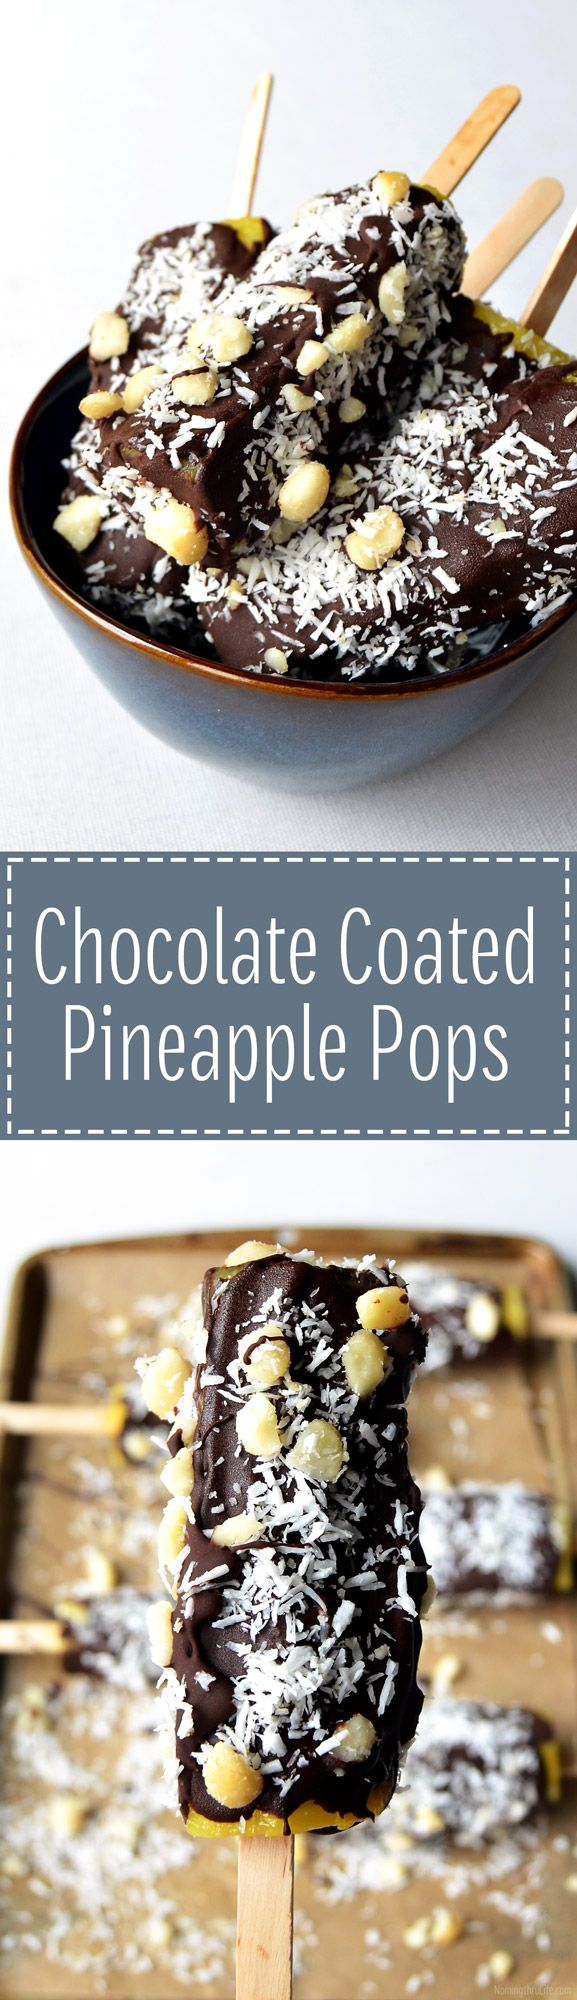 Chocolate Coated Pineapple Pops – The perfect healthy frozen treat that can be easily customized and is super simple to make! | RECIPE at NomingthruLife.com